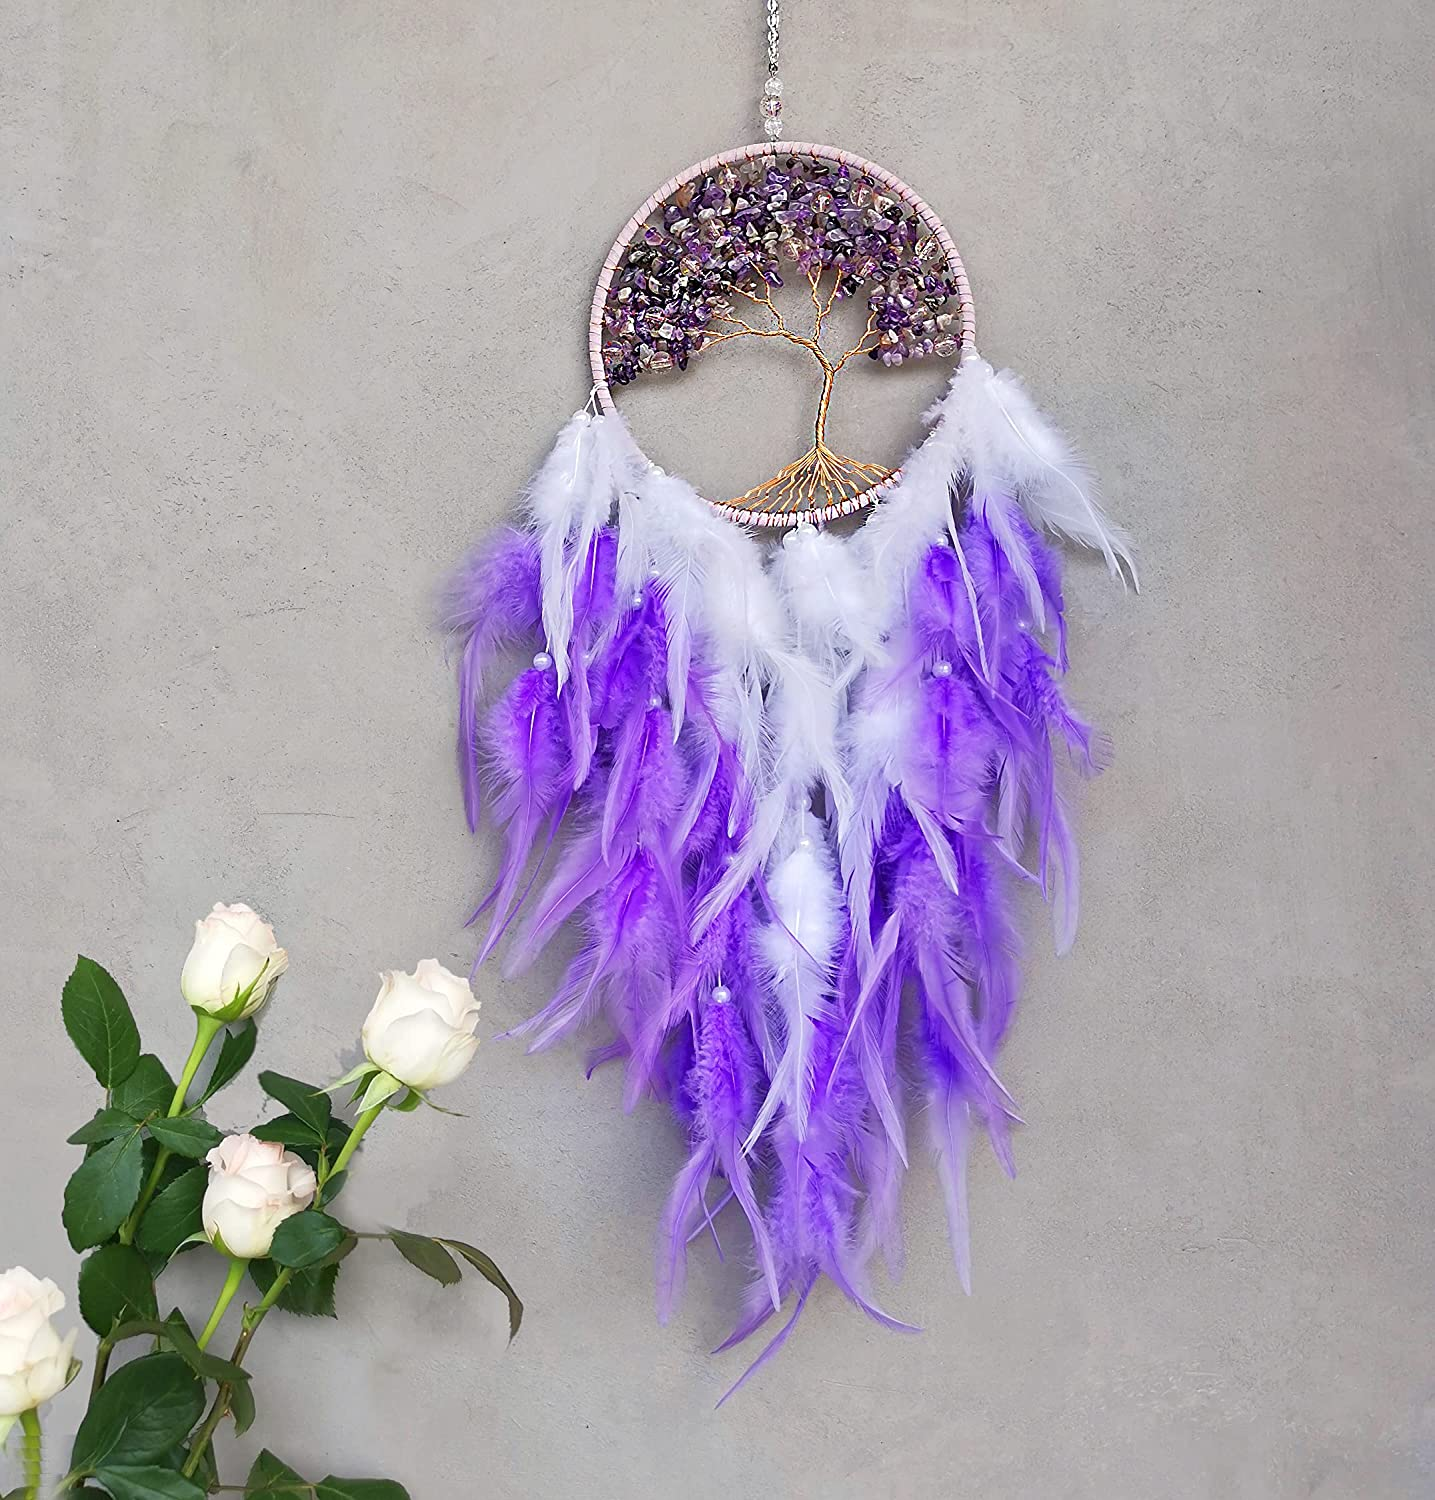 Tree of Life Dream Catcher with Natural Healing Crystals, Handmade Wall Hanging Ornament Home Decoration in Elegant Package, Crystals Dream Catcher for Bedroom As Best Wishes Blessing Gift(Purple)